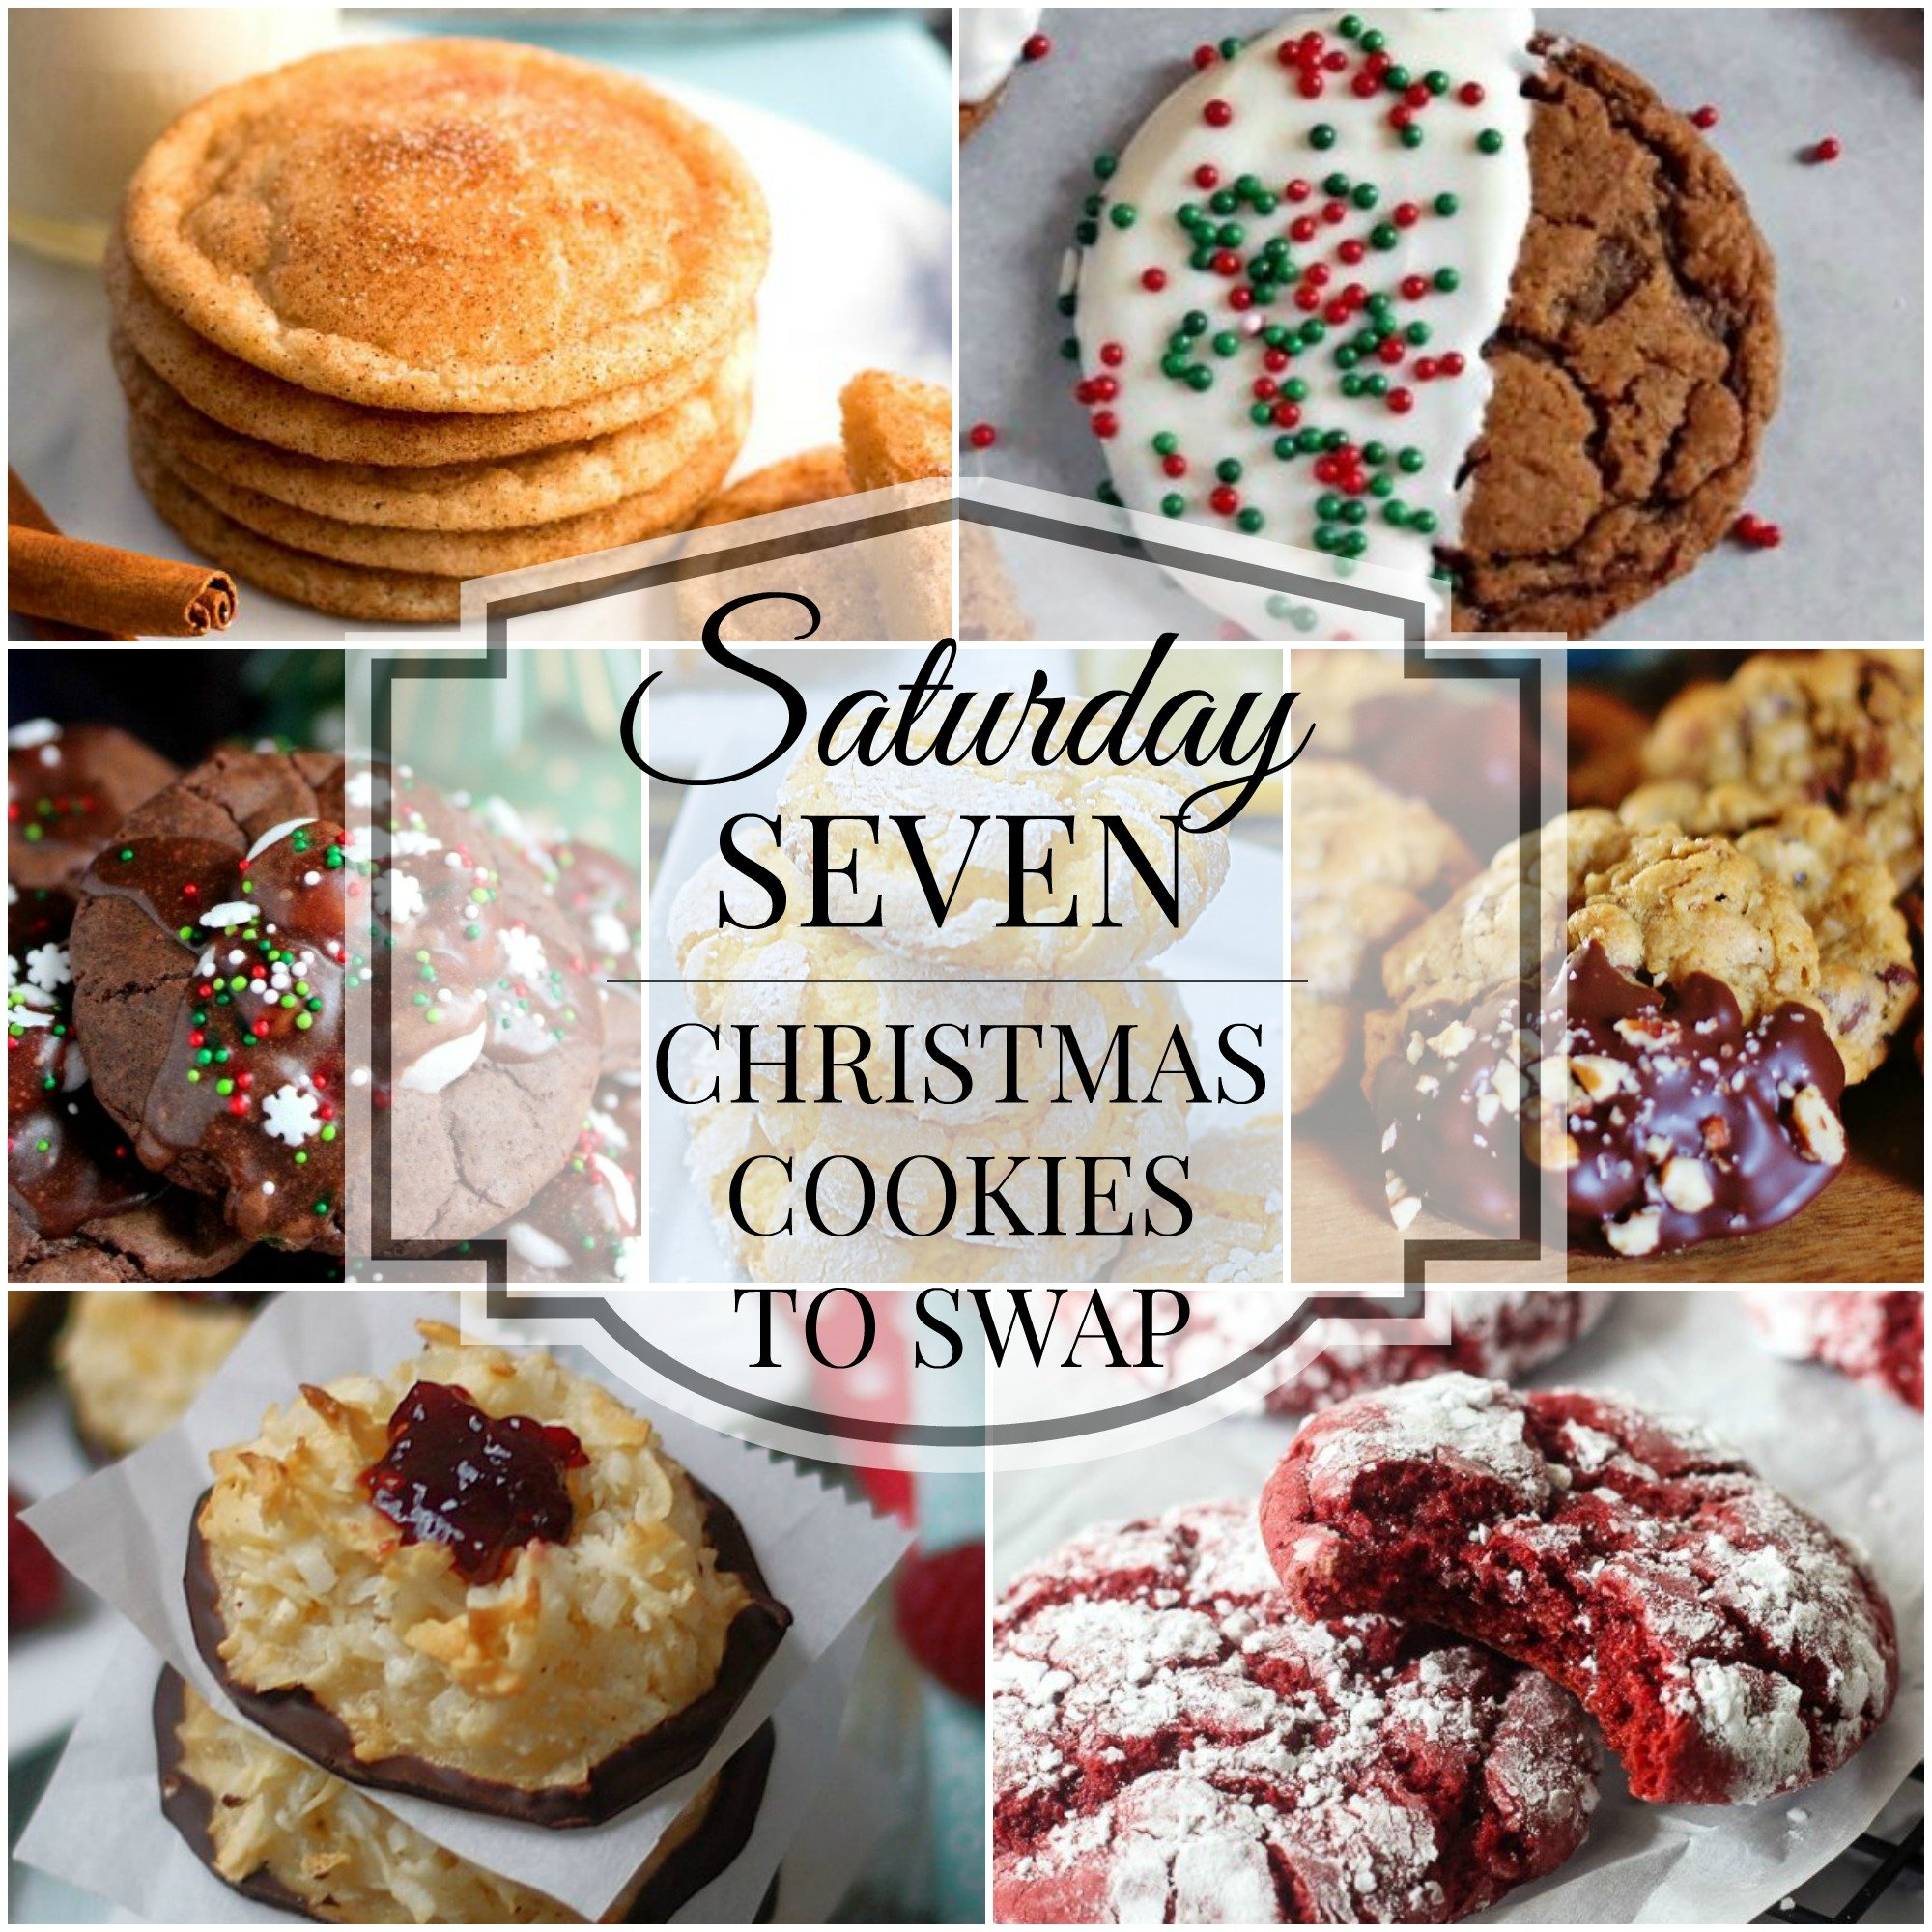 Saturday 7 Christmas Cookies Title Collage